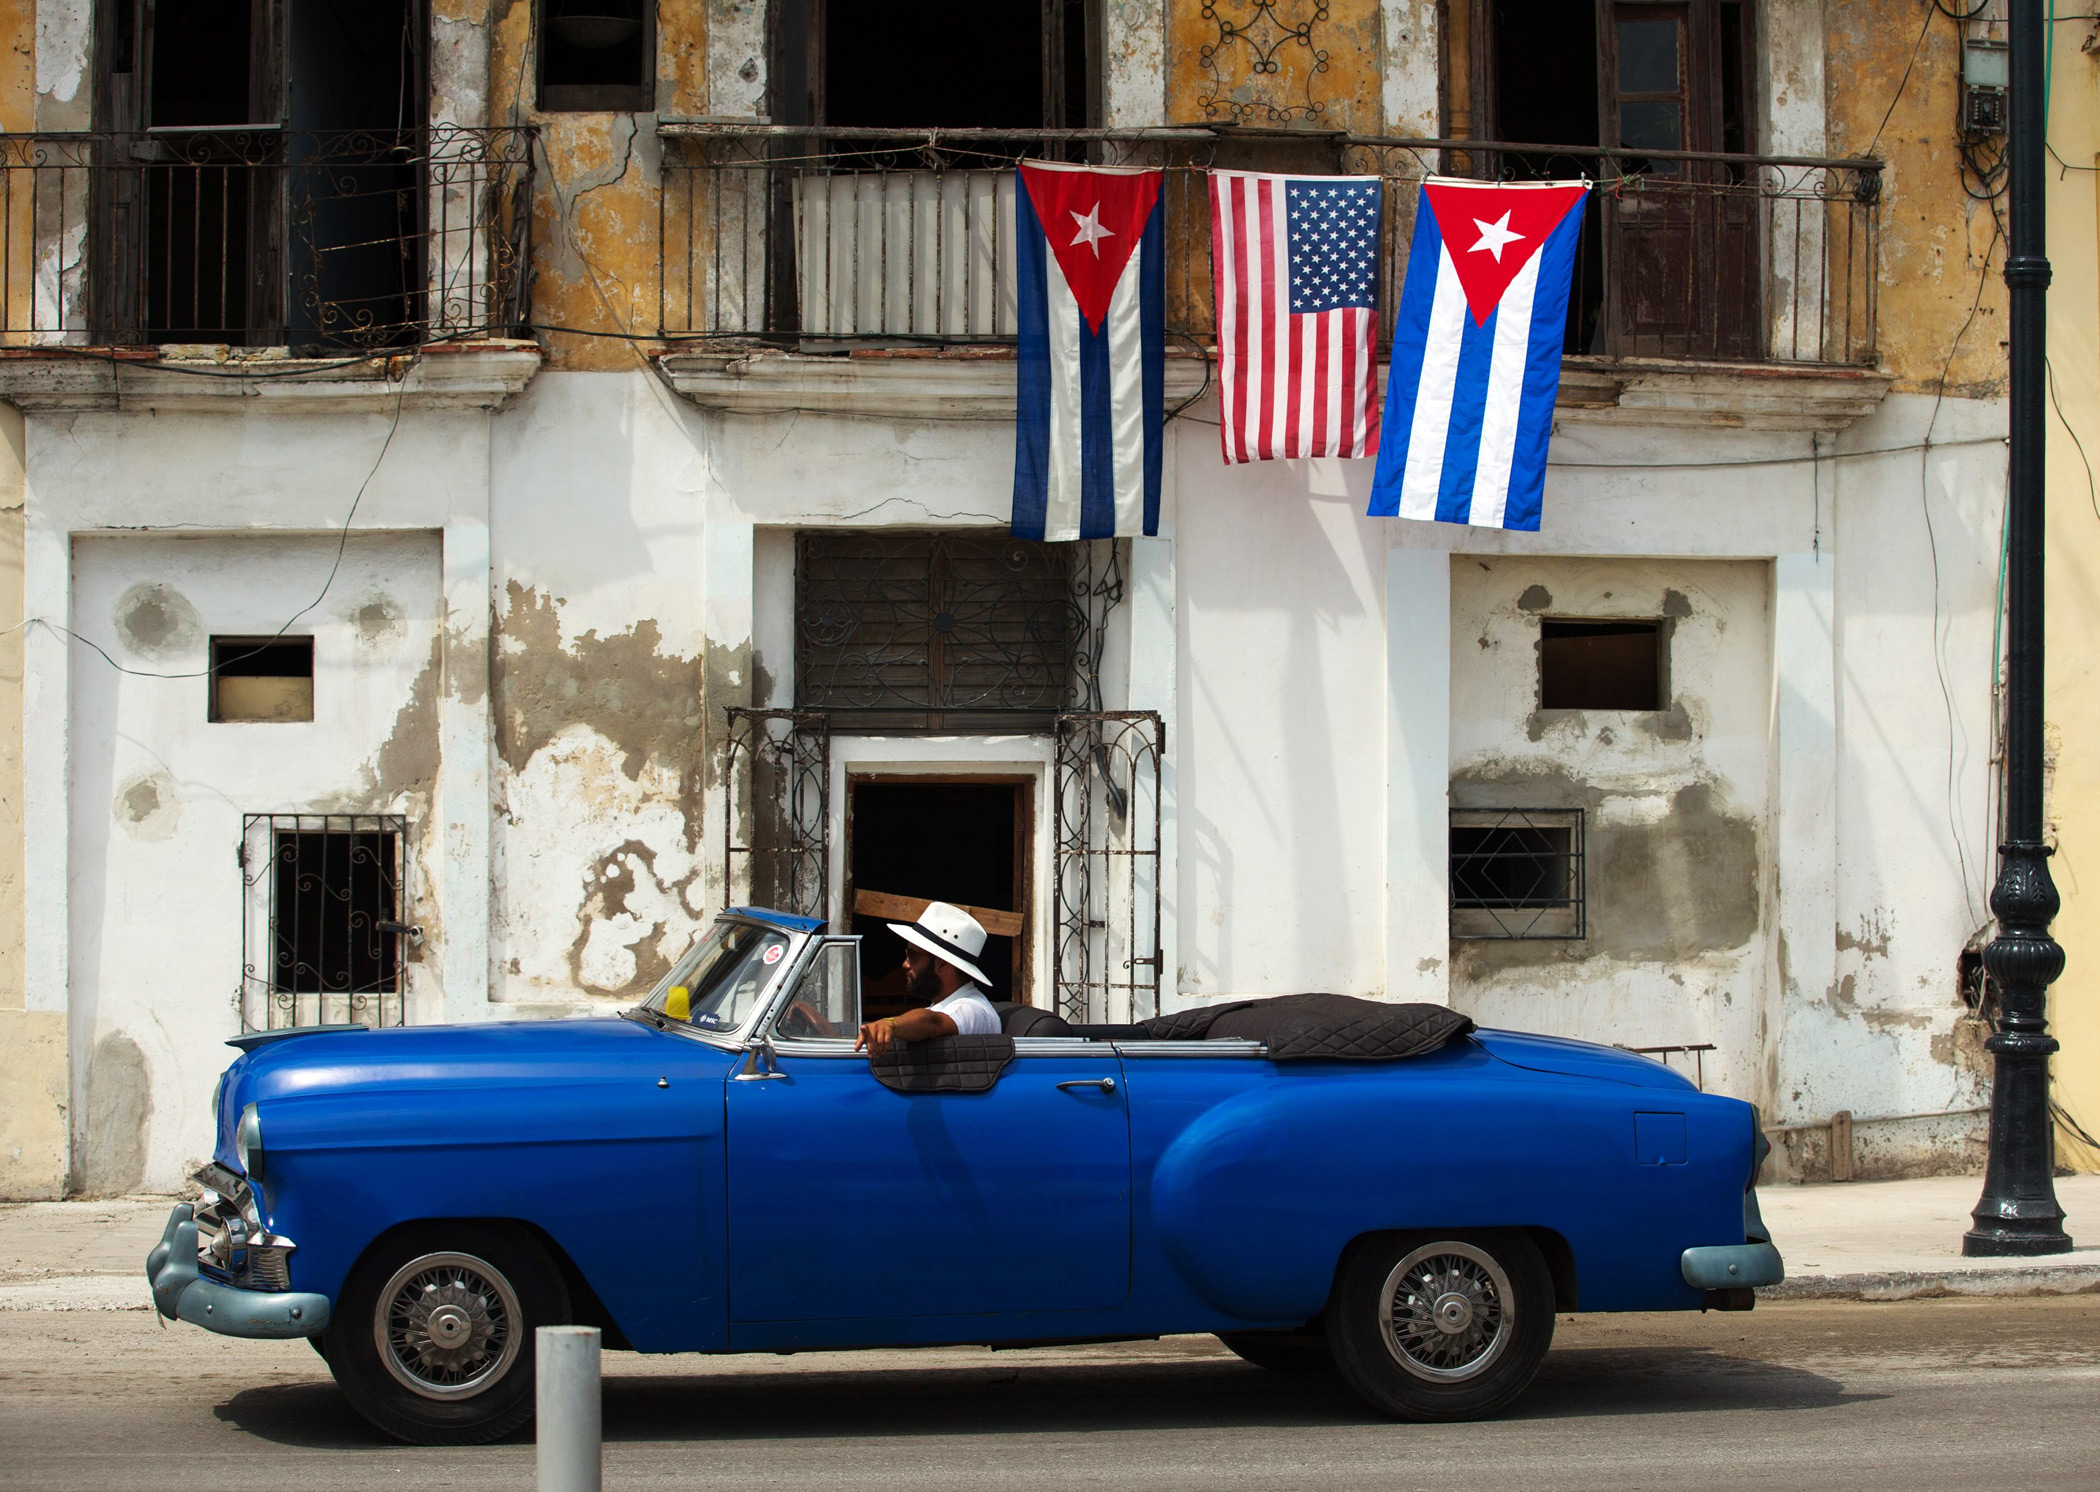 A car passes by a house decorated with the flags of the United States and Cuba in Havana, on March 20 2016.